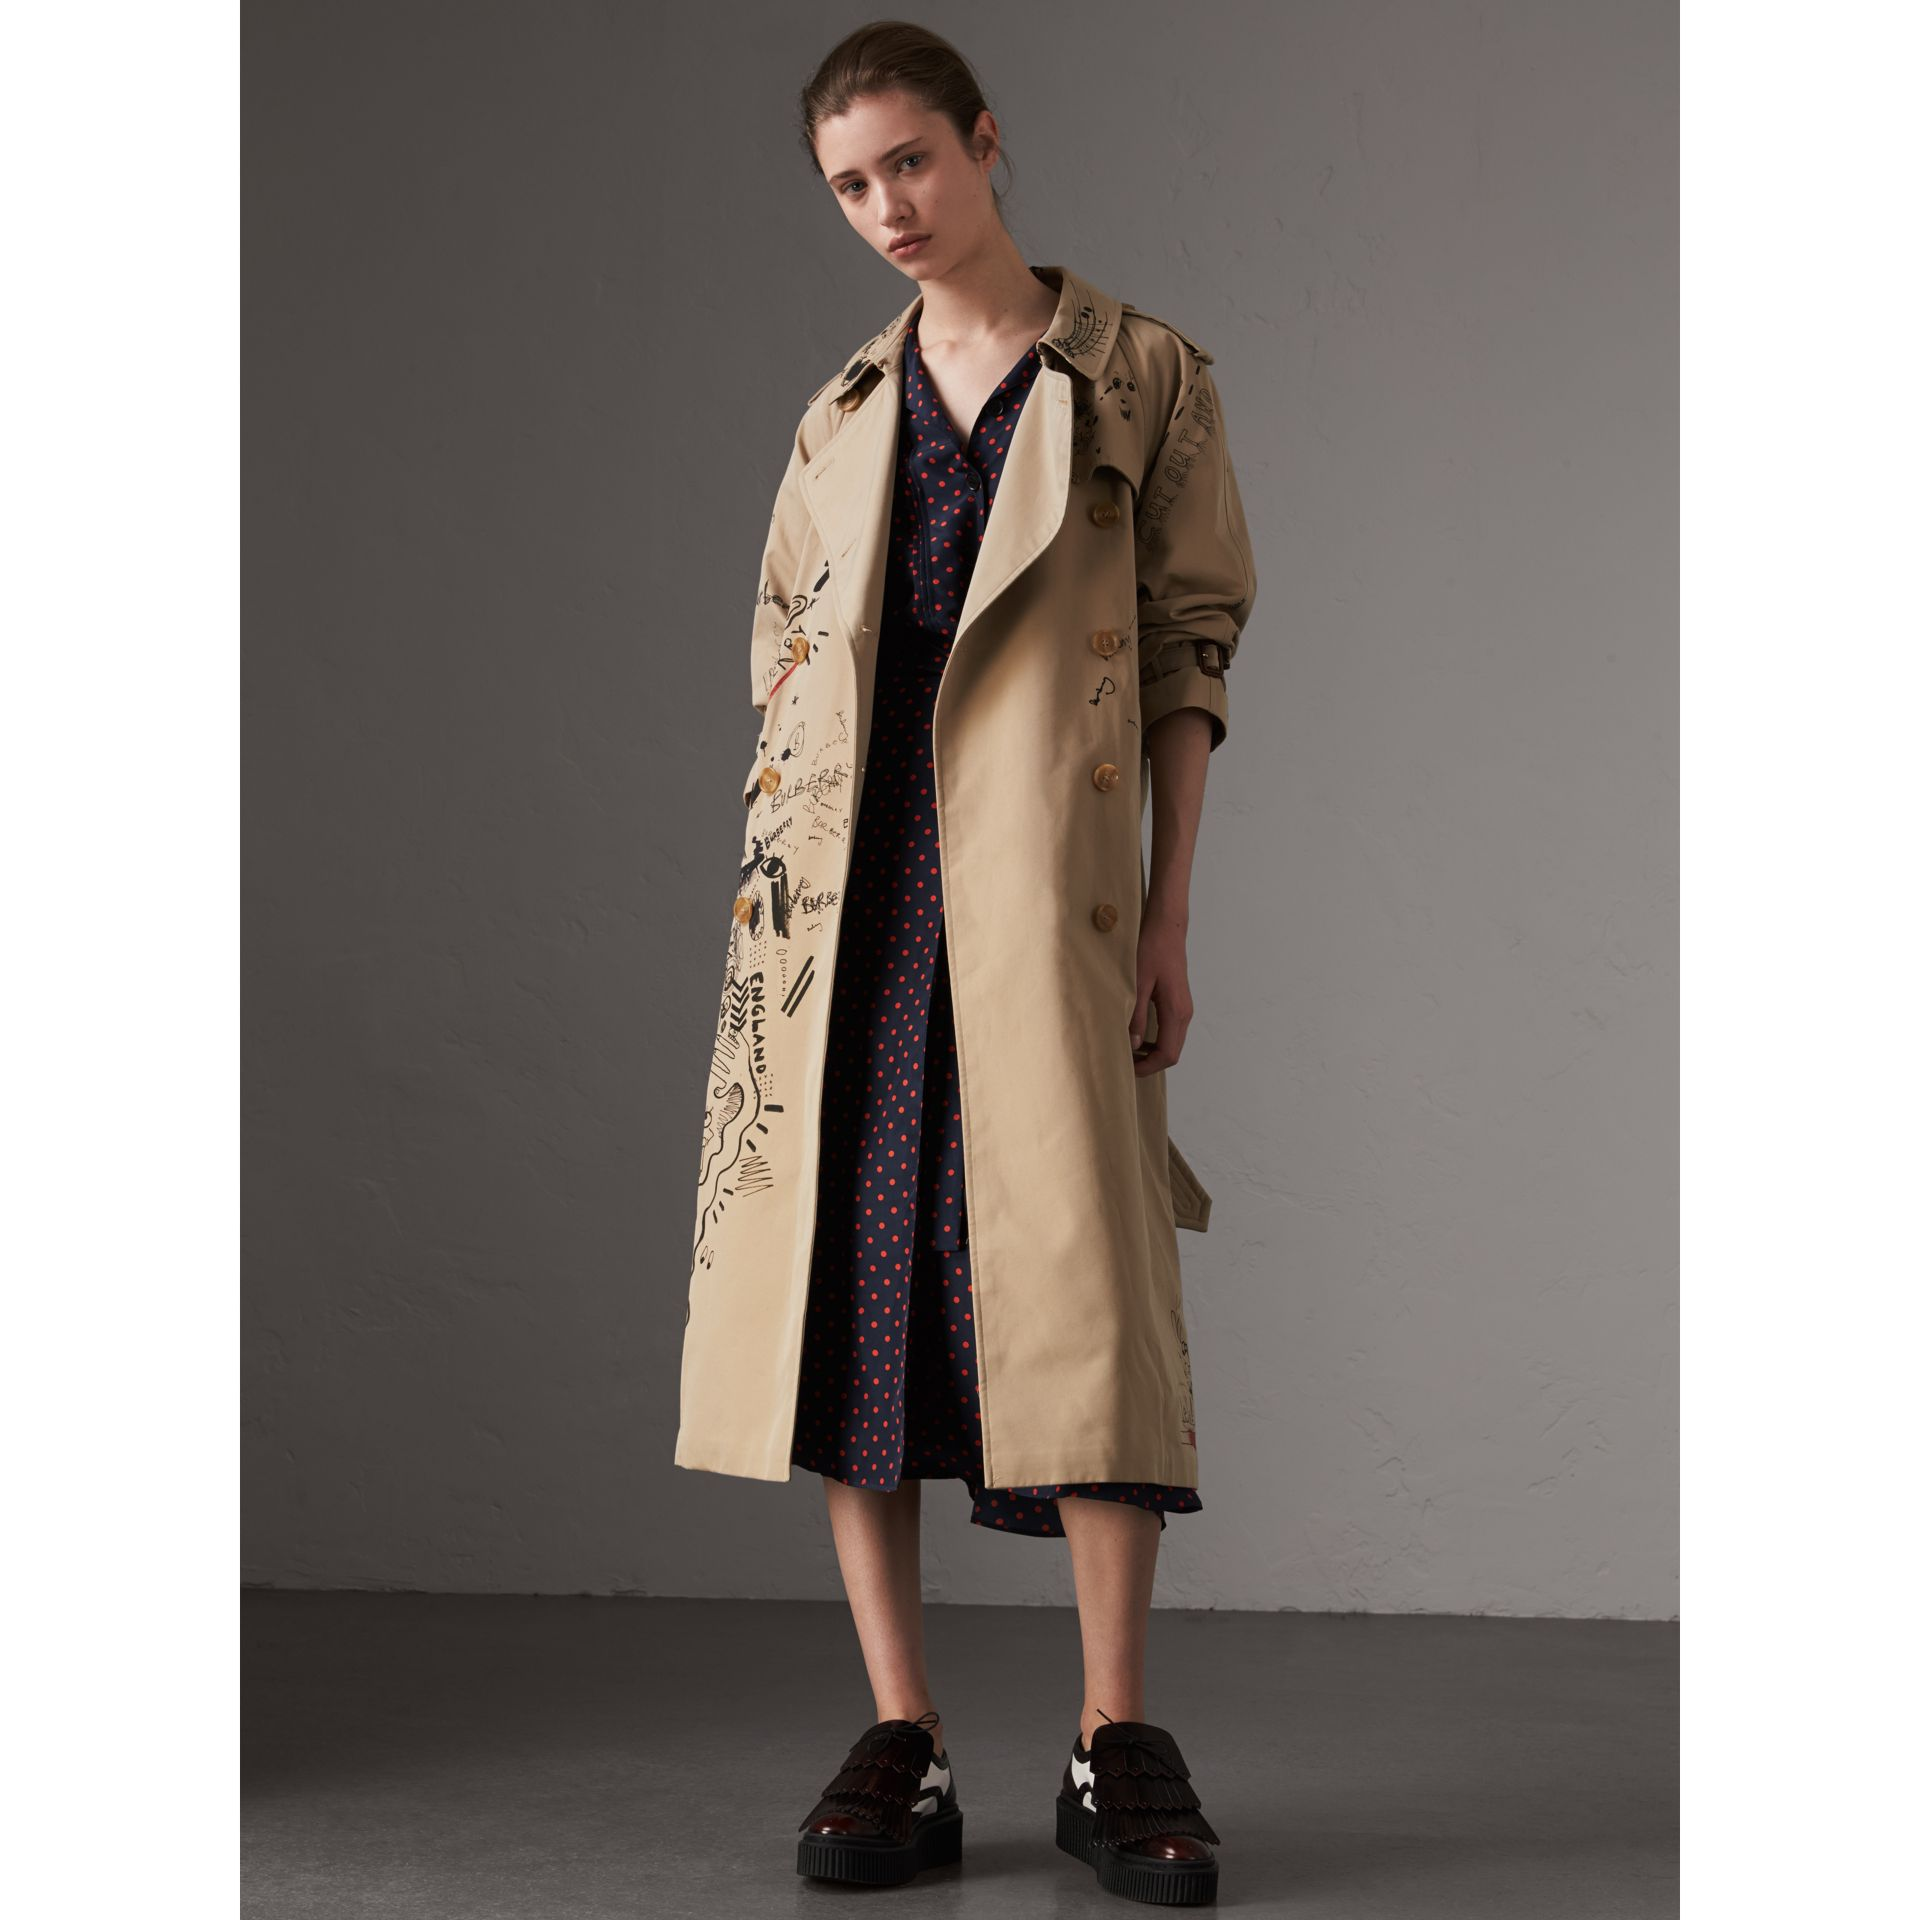 Sketch Print Cotton Gabardine Trench Coat in Honey - Women | Burberry United States - gallery image 5